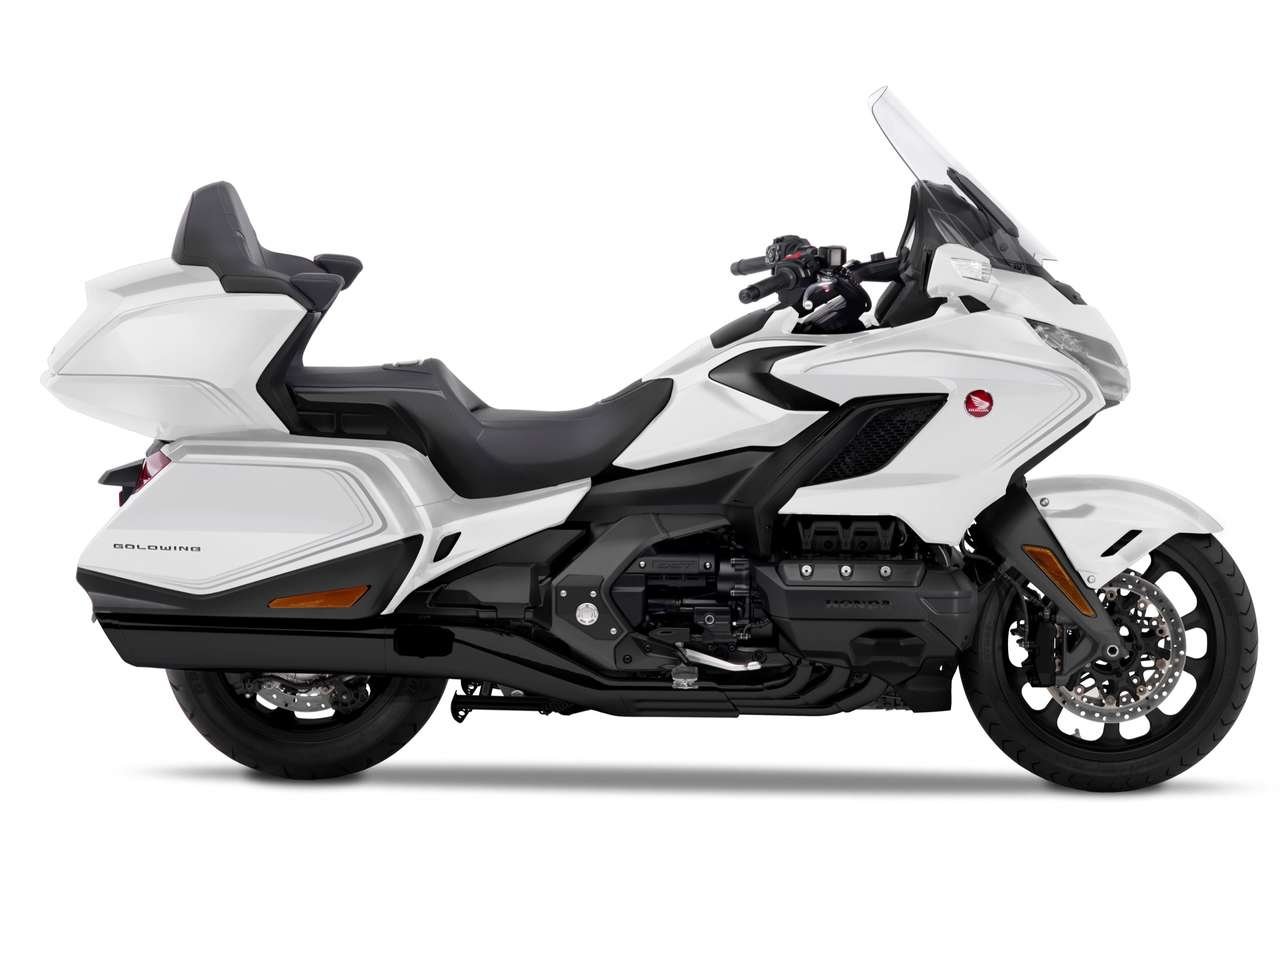 2020 Honda Gold Wing Redesign and Concept